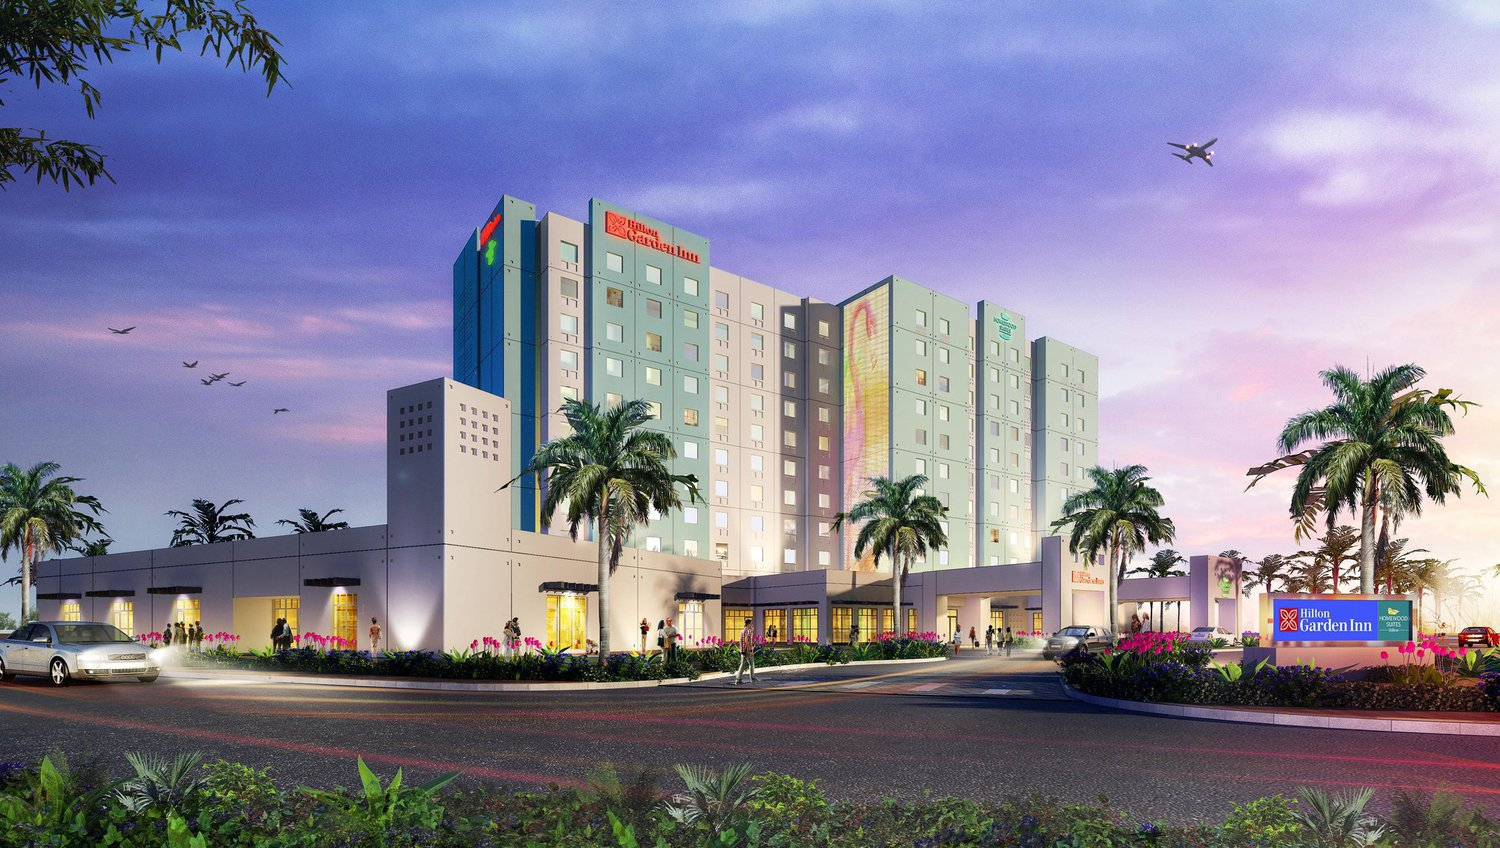 Hilton garden inn miami dolphin mall miami fl jobs - Hilton garden inn grand ave chicago ...